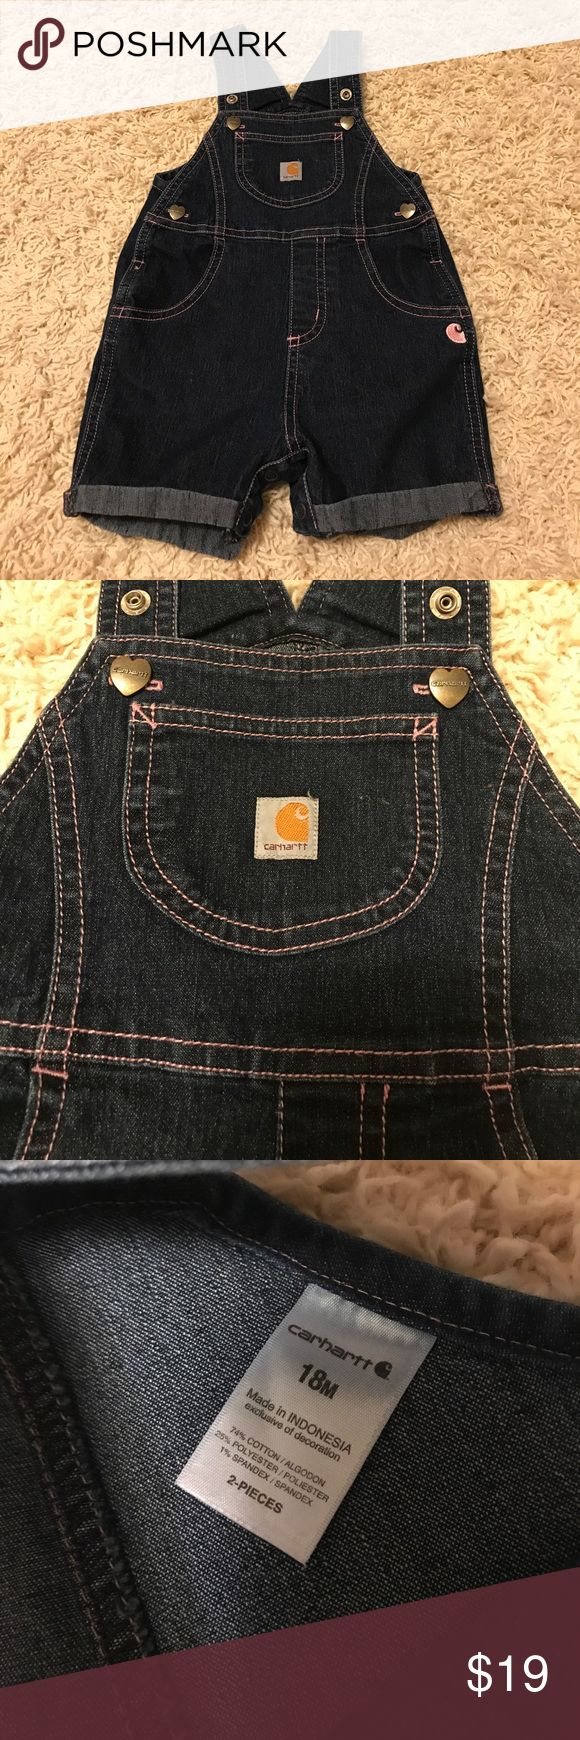 18 months Carhartt overalls Worn very very few times- maybe 3. Perfect condition . So cute with pink thread's, heart snap details, and two options for snapping the straps Carhartt One Pieces